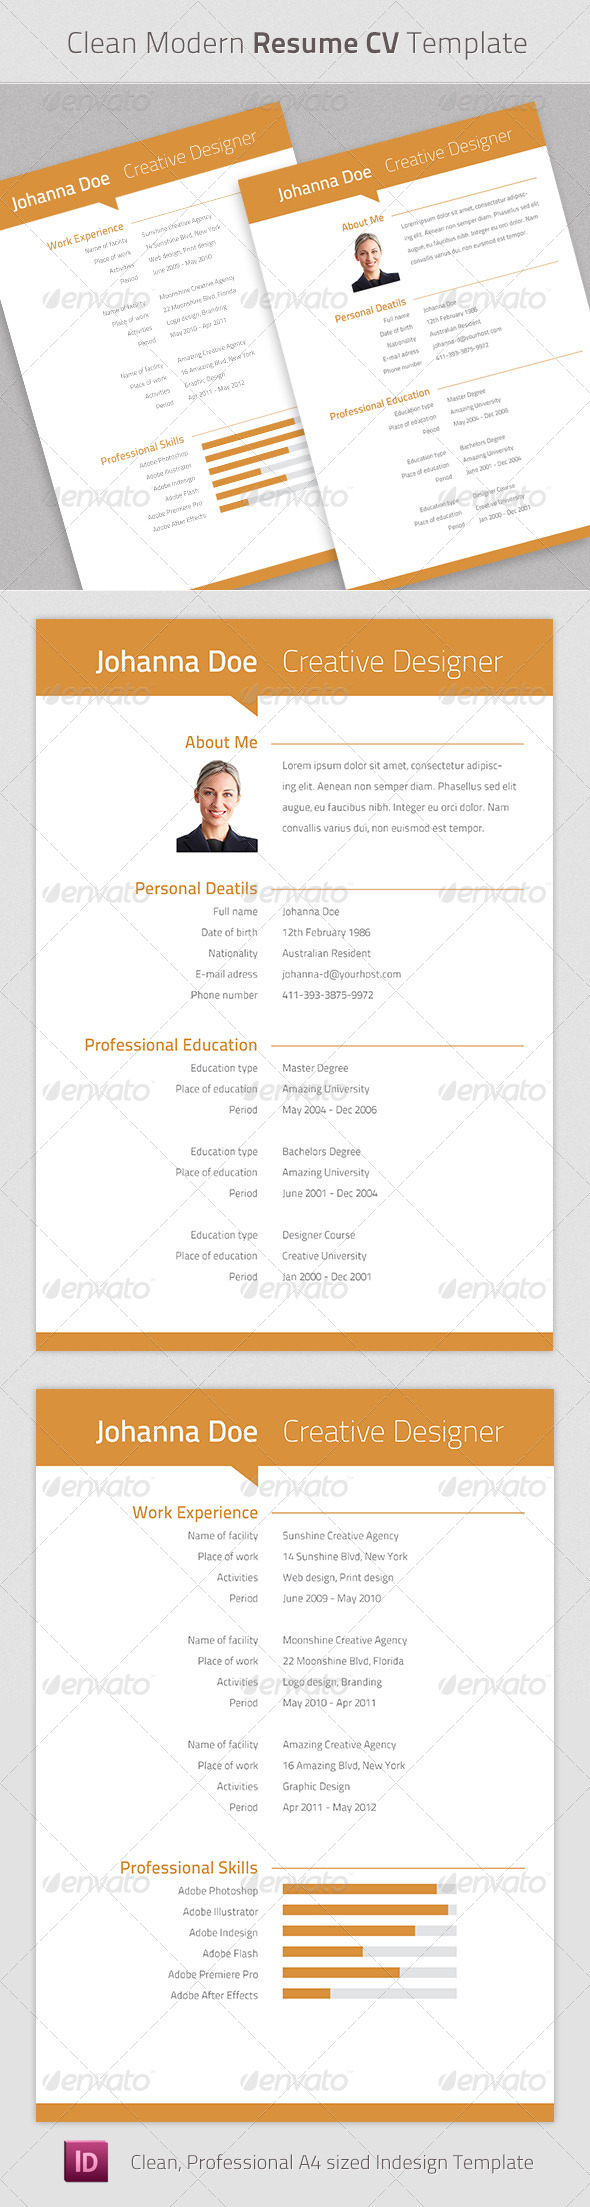 clean modern resume cv indesign template graphicriver